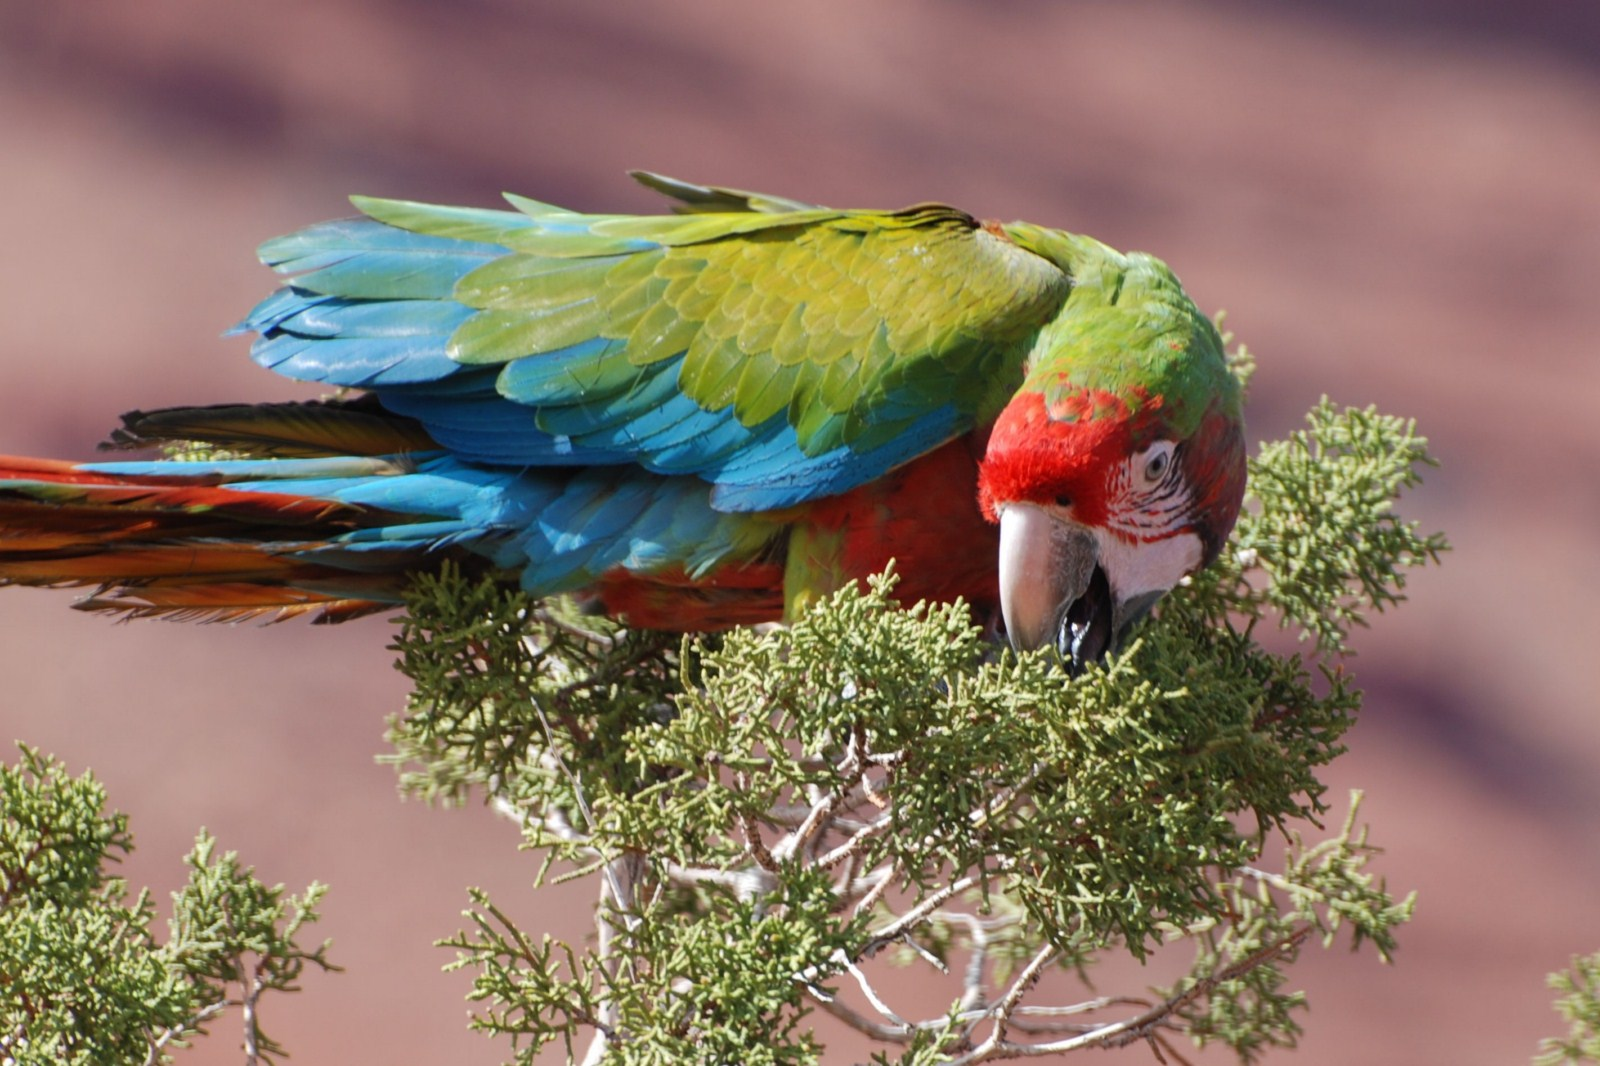 Thick-billed parrot project in Arizona